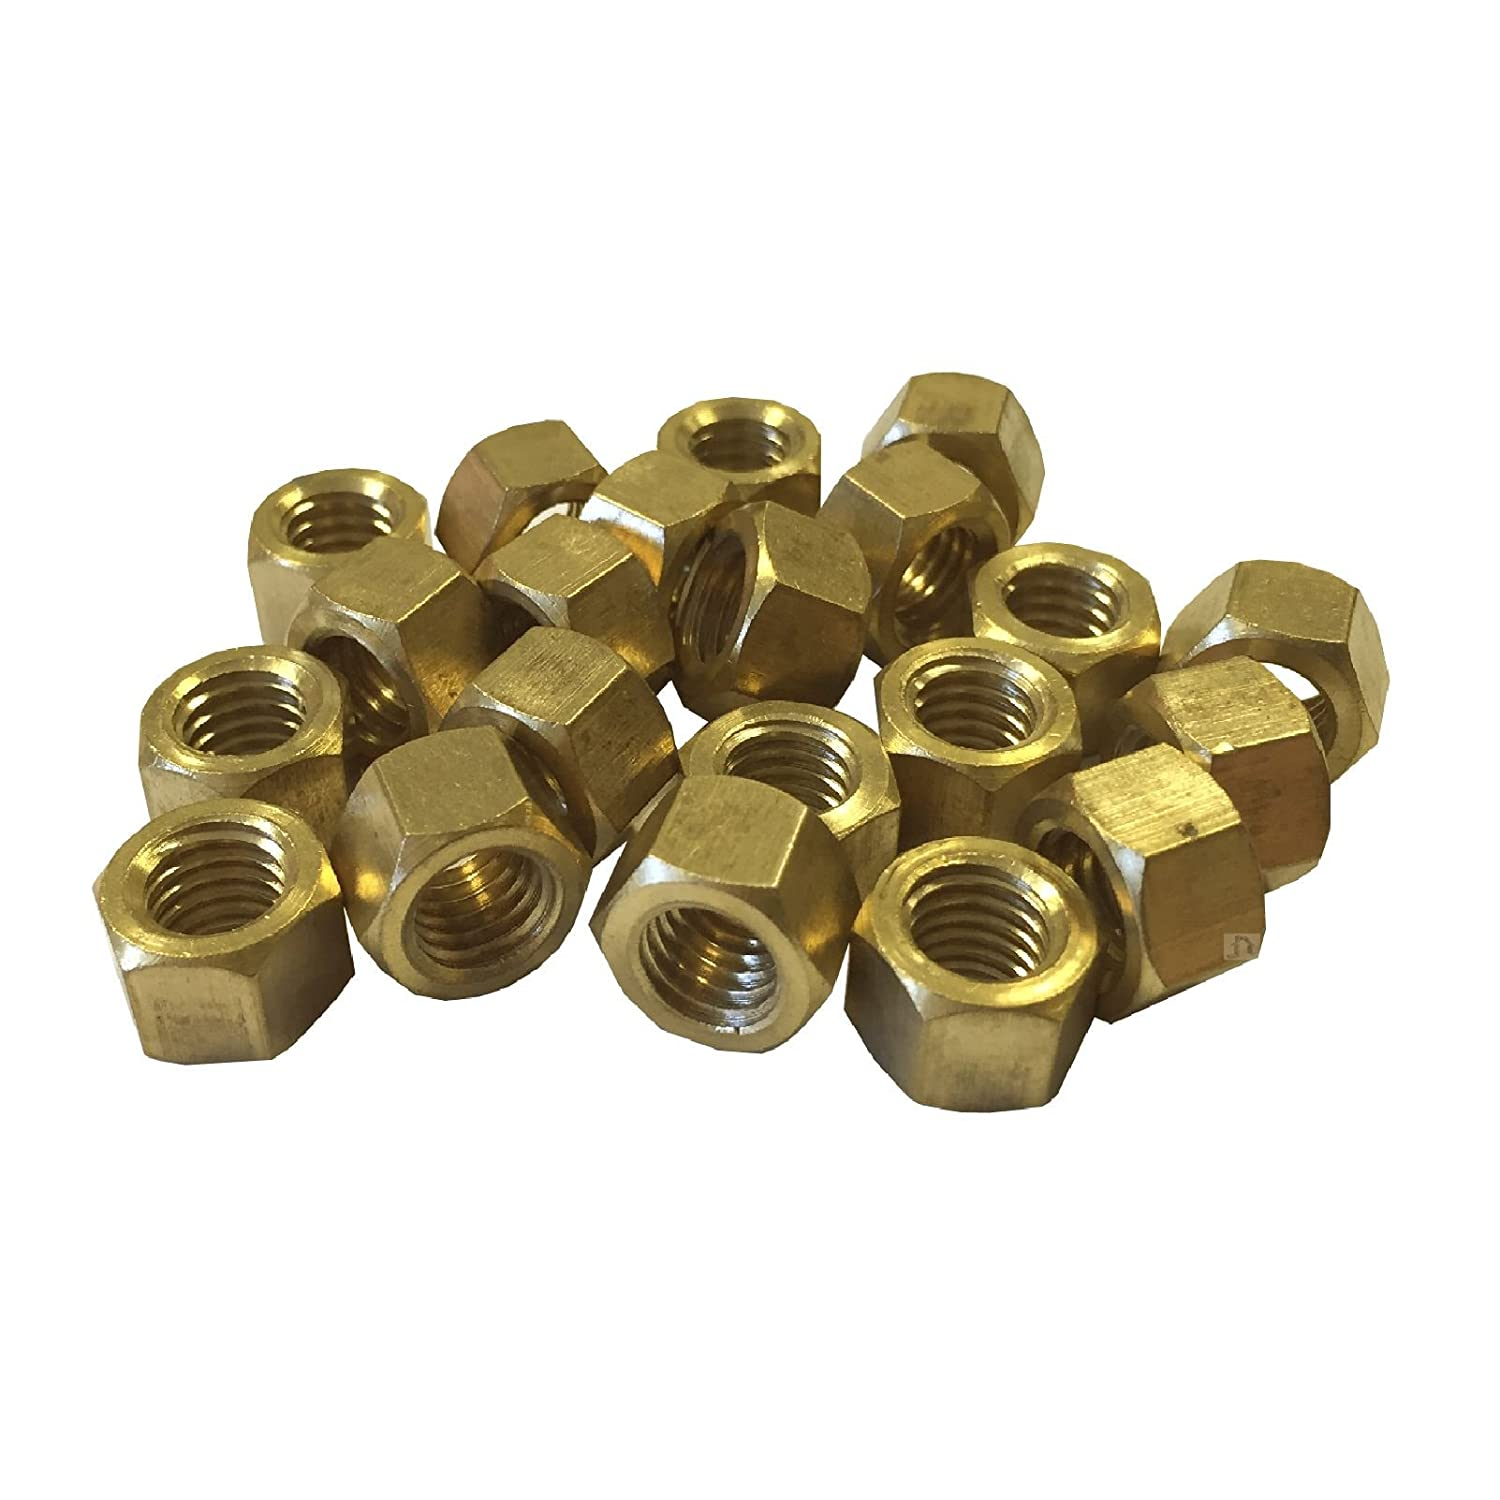 16 x Brass Exhaust Manifold Nuts M8 x 1.25 Pitch High Temperature